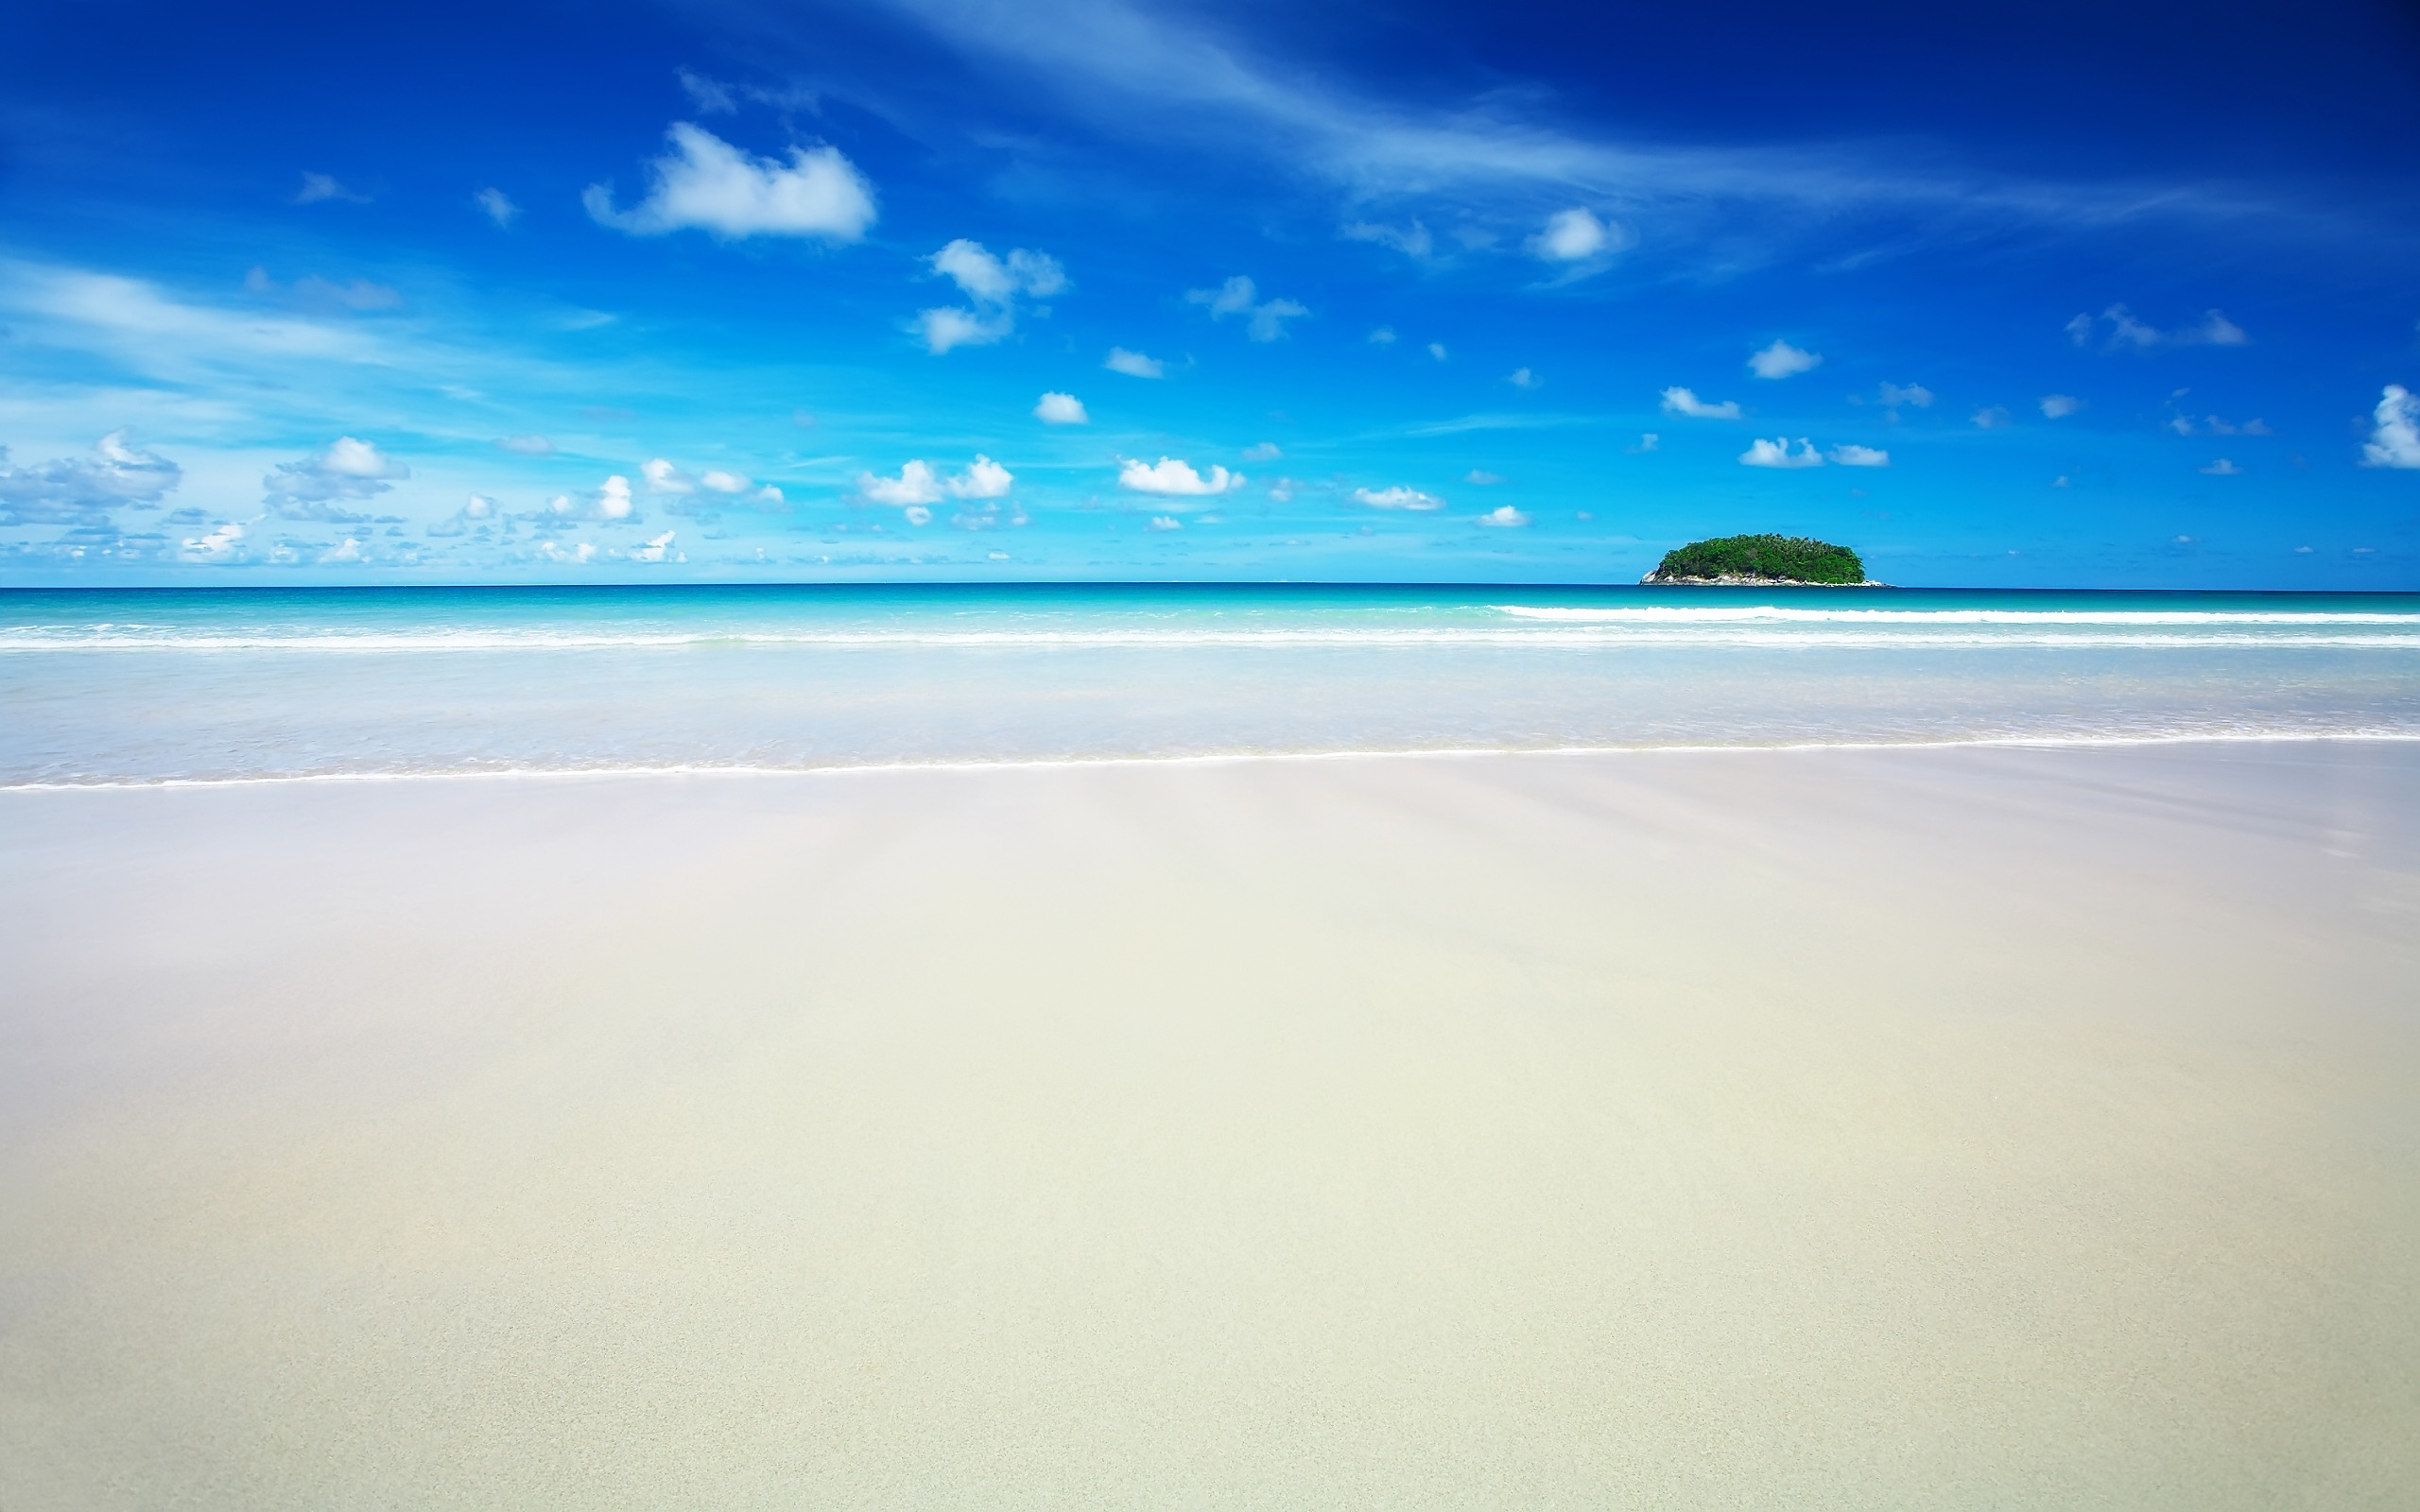 paradise beach wallpaper beaches nature wallpapers in jpg format for